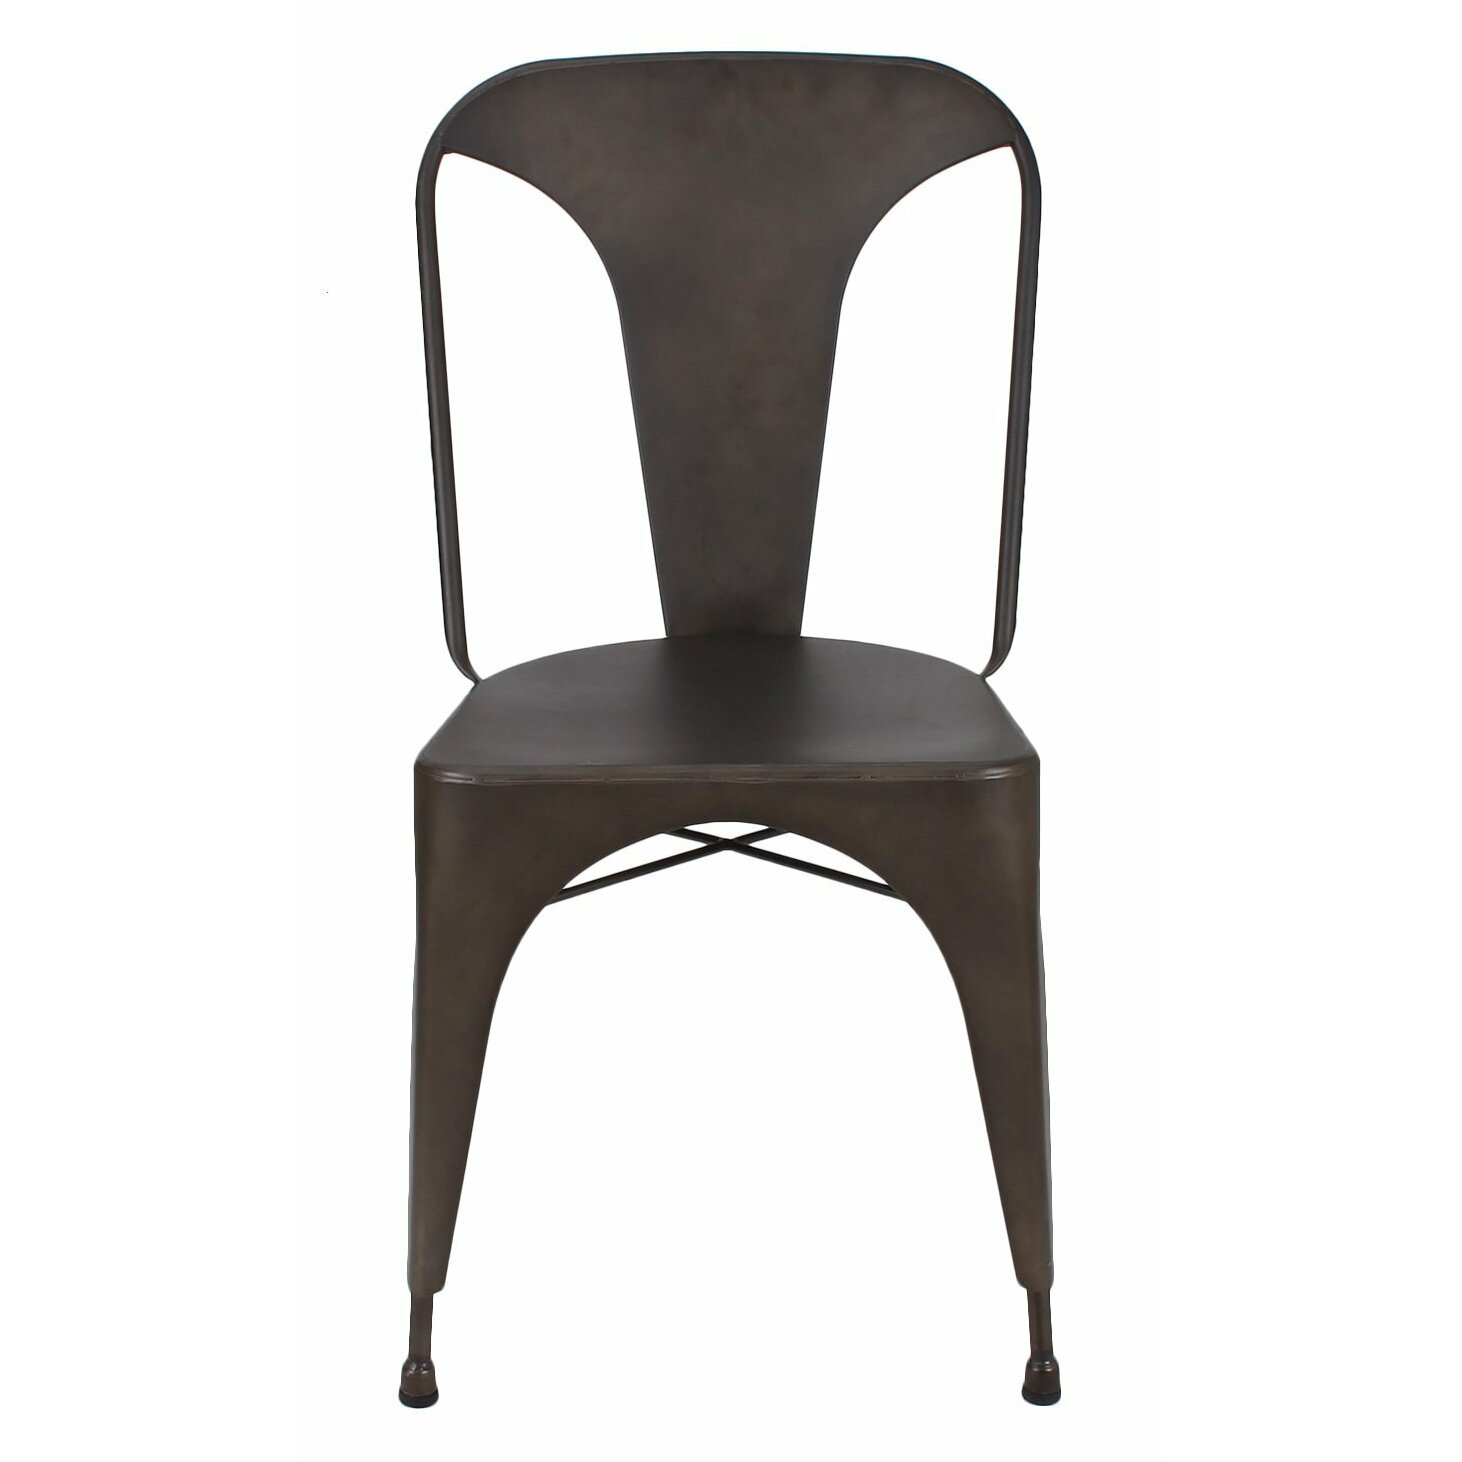 Adecotrading Side Chair Amp Reviews Wayfair